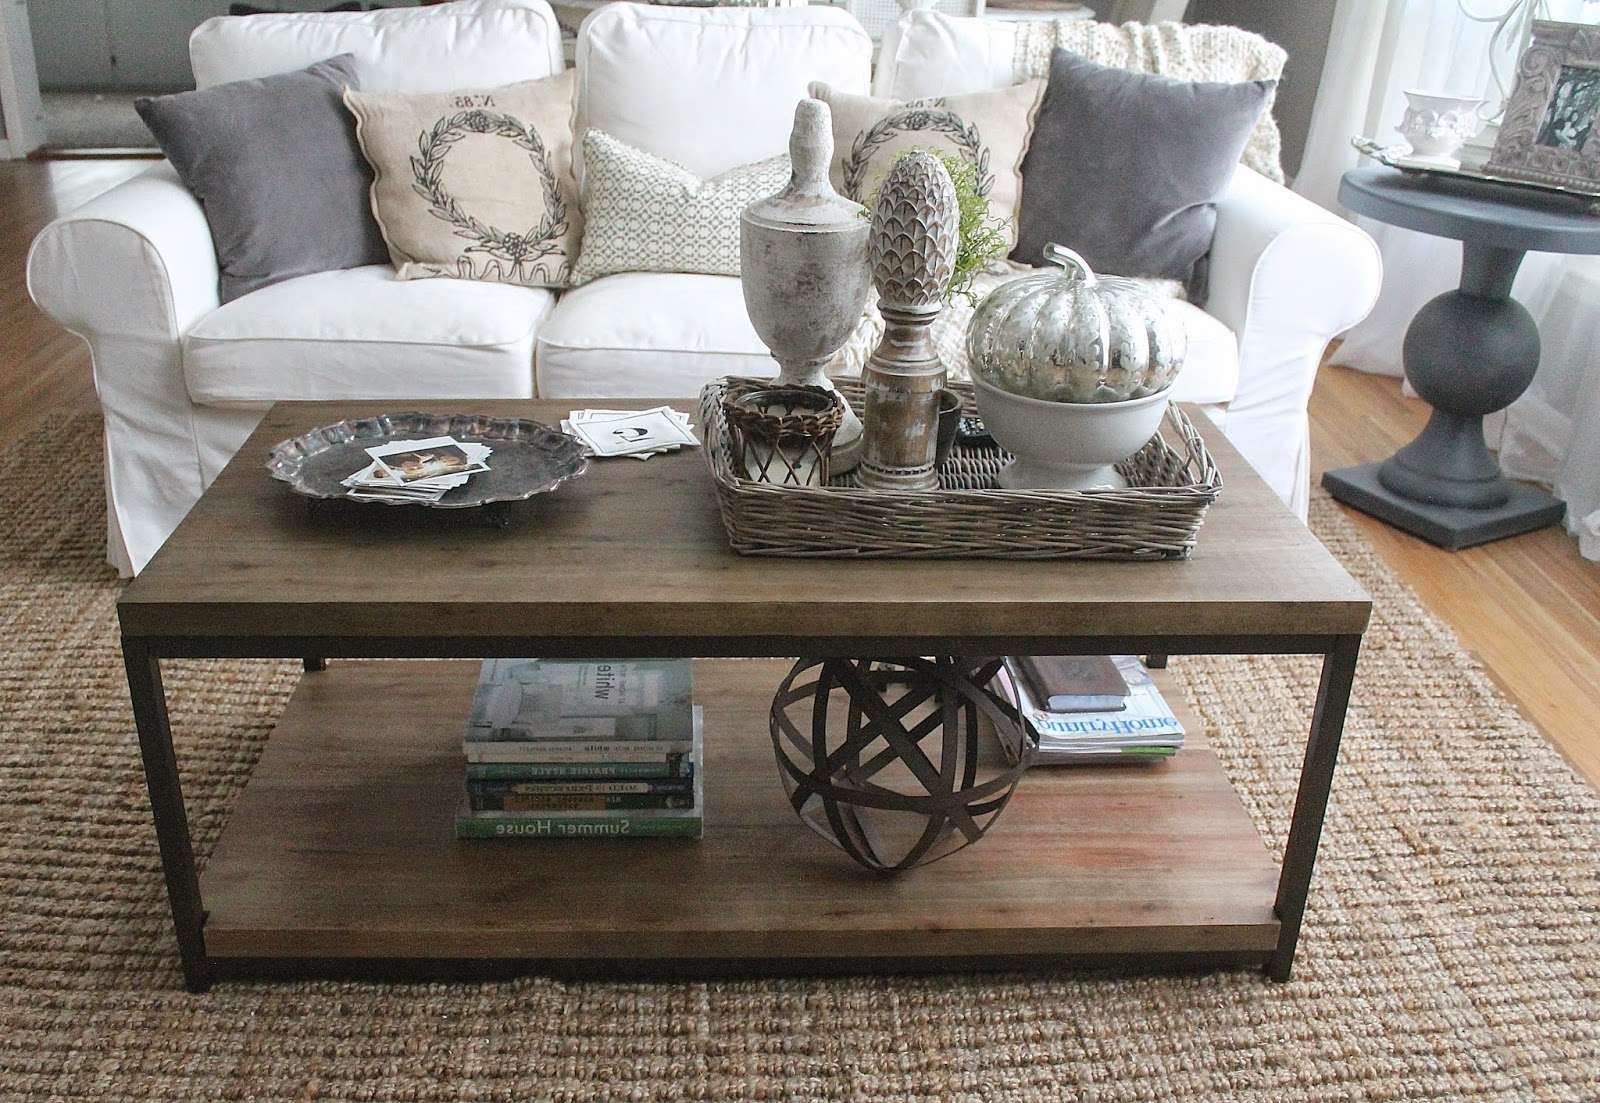 Preferred Rustic Christmas Coffee Table Decors For Coffee Tables : Beautiful Creative Diy Coffee Table Centerpiece (View 16 of 20)